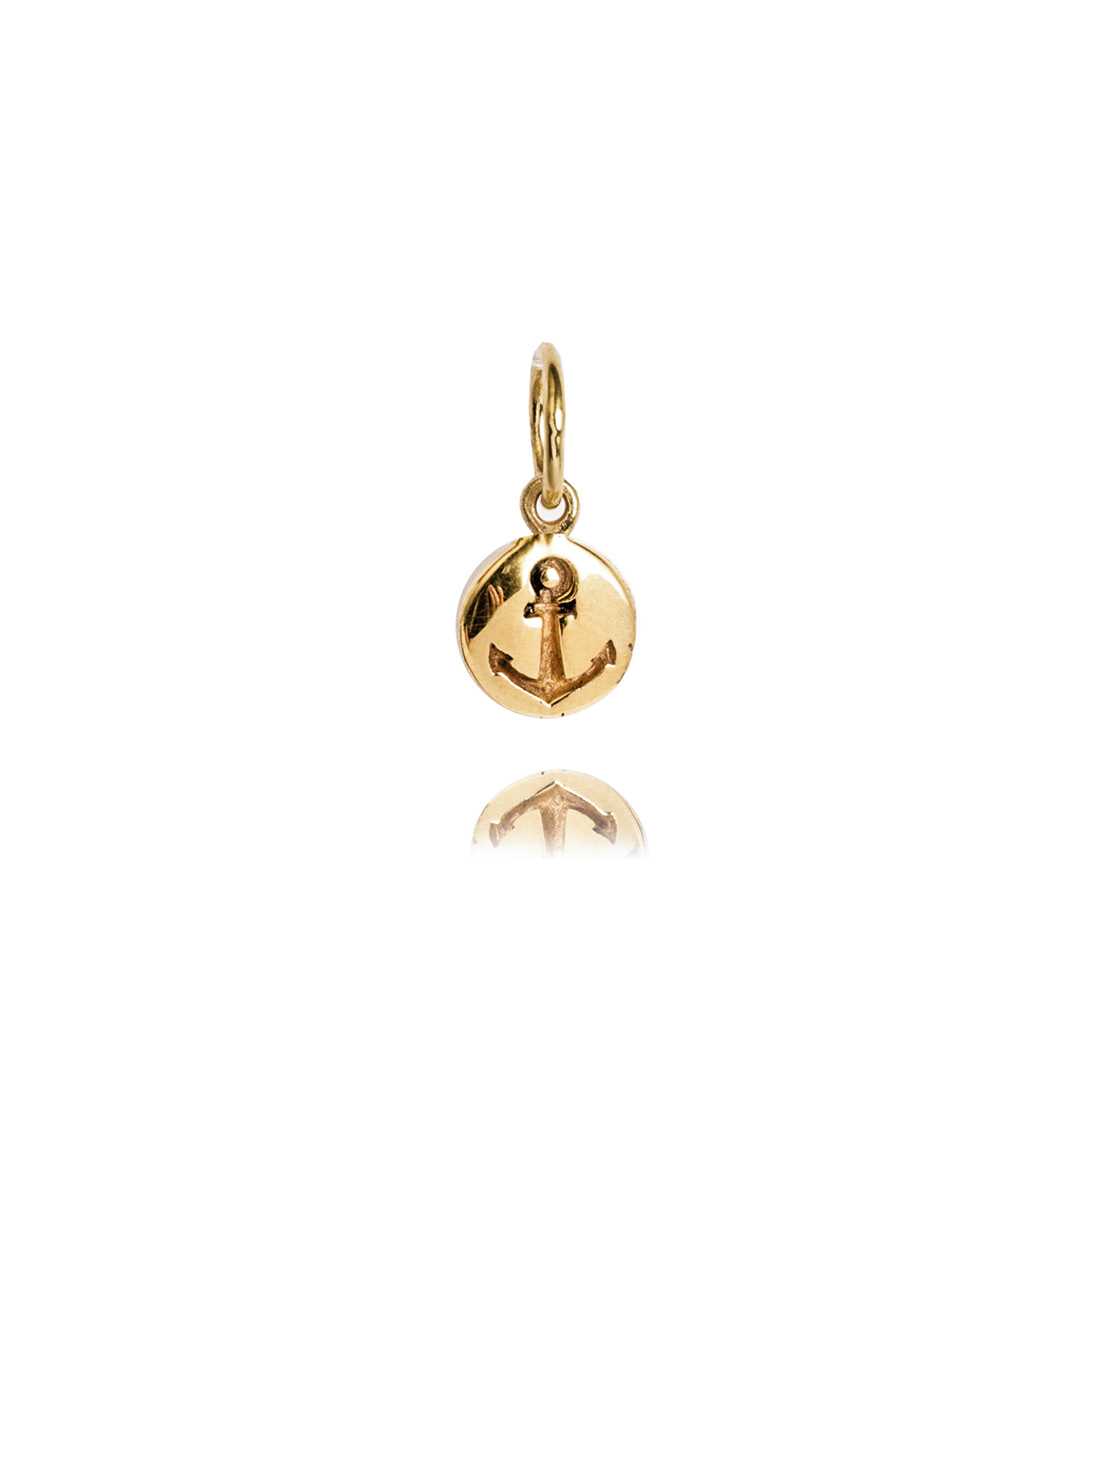 Gold anchor charm tilly sveaas jewellery gold anchor disc aloadofball Choice Image